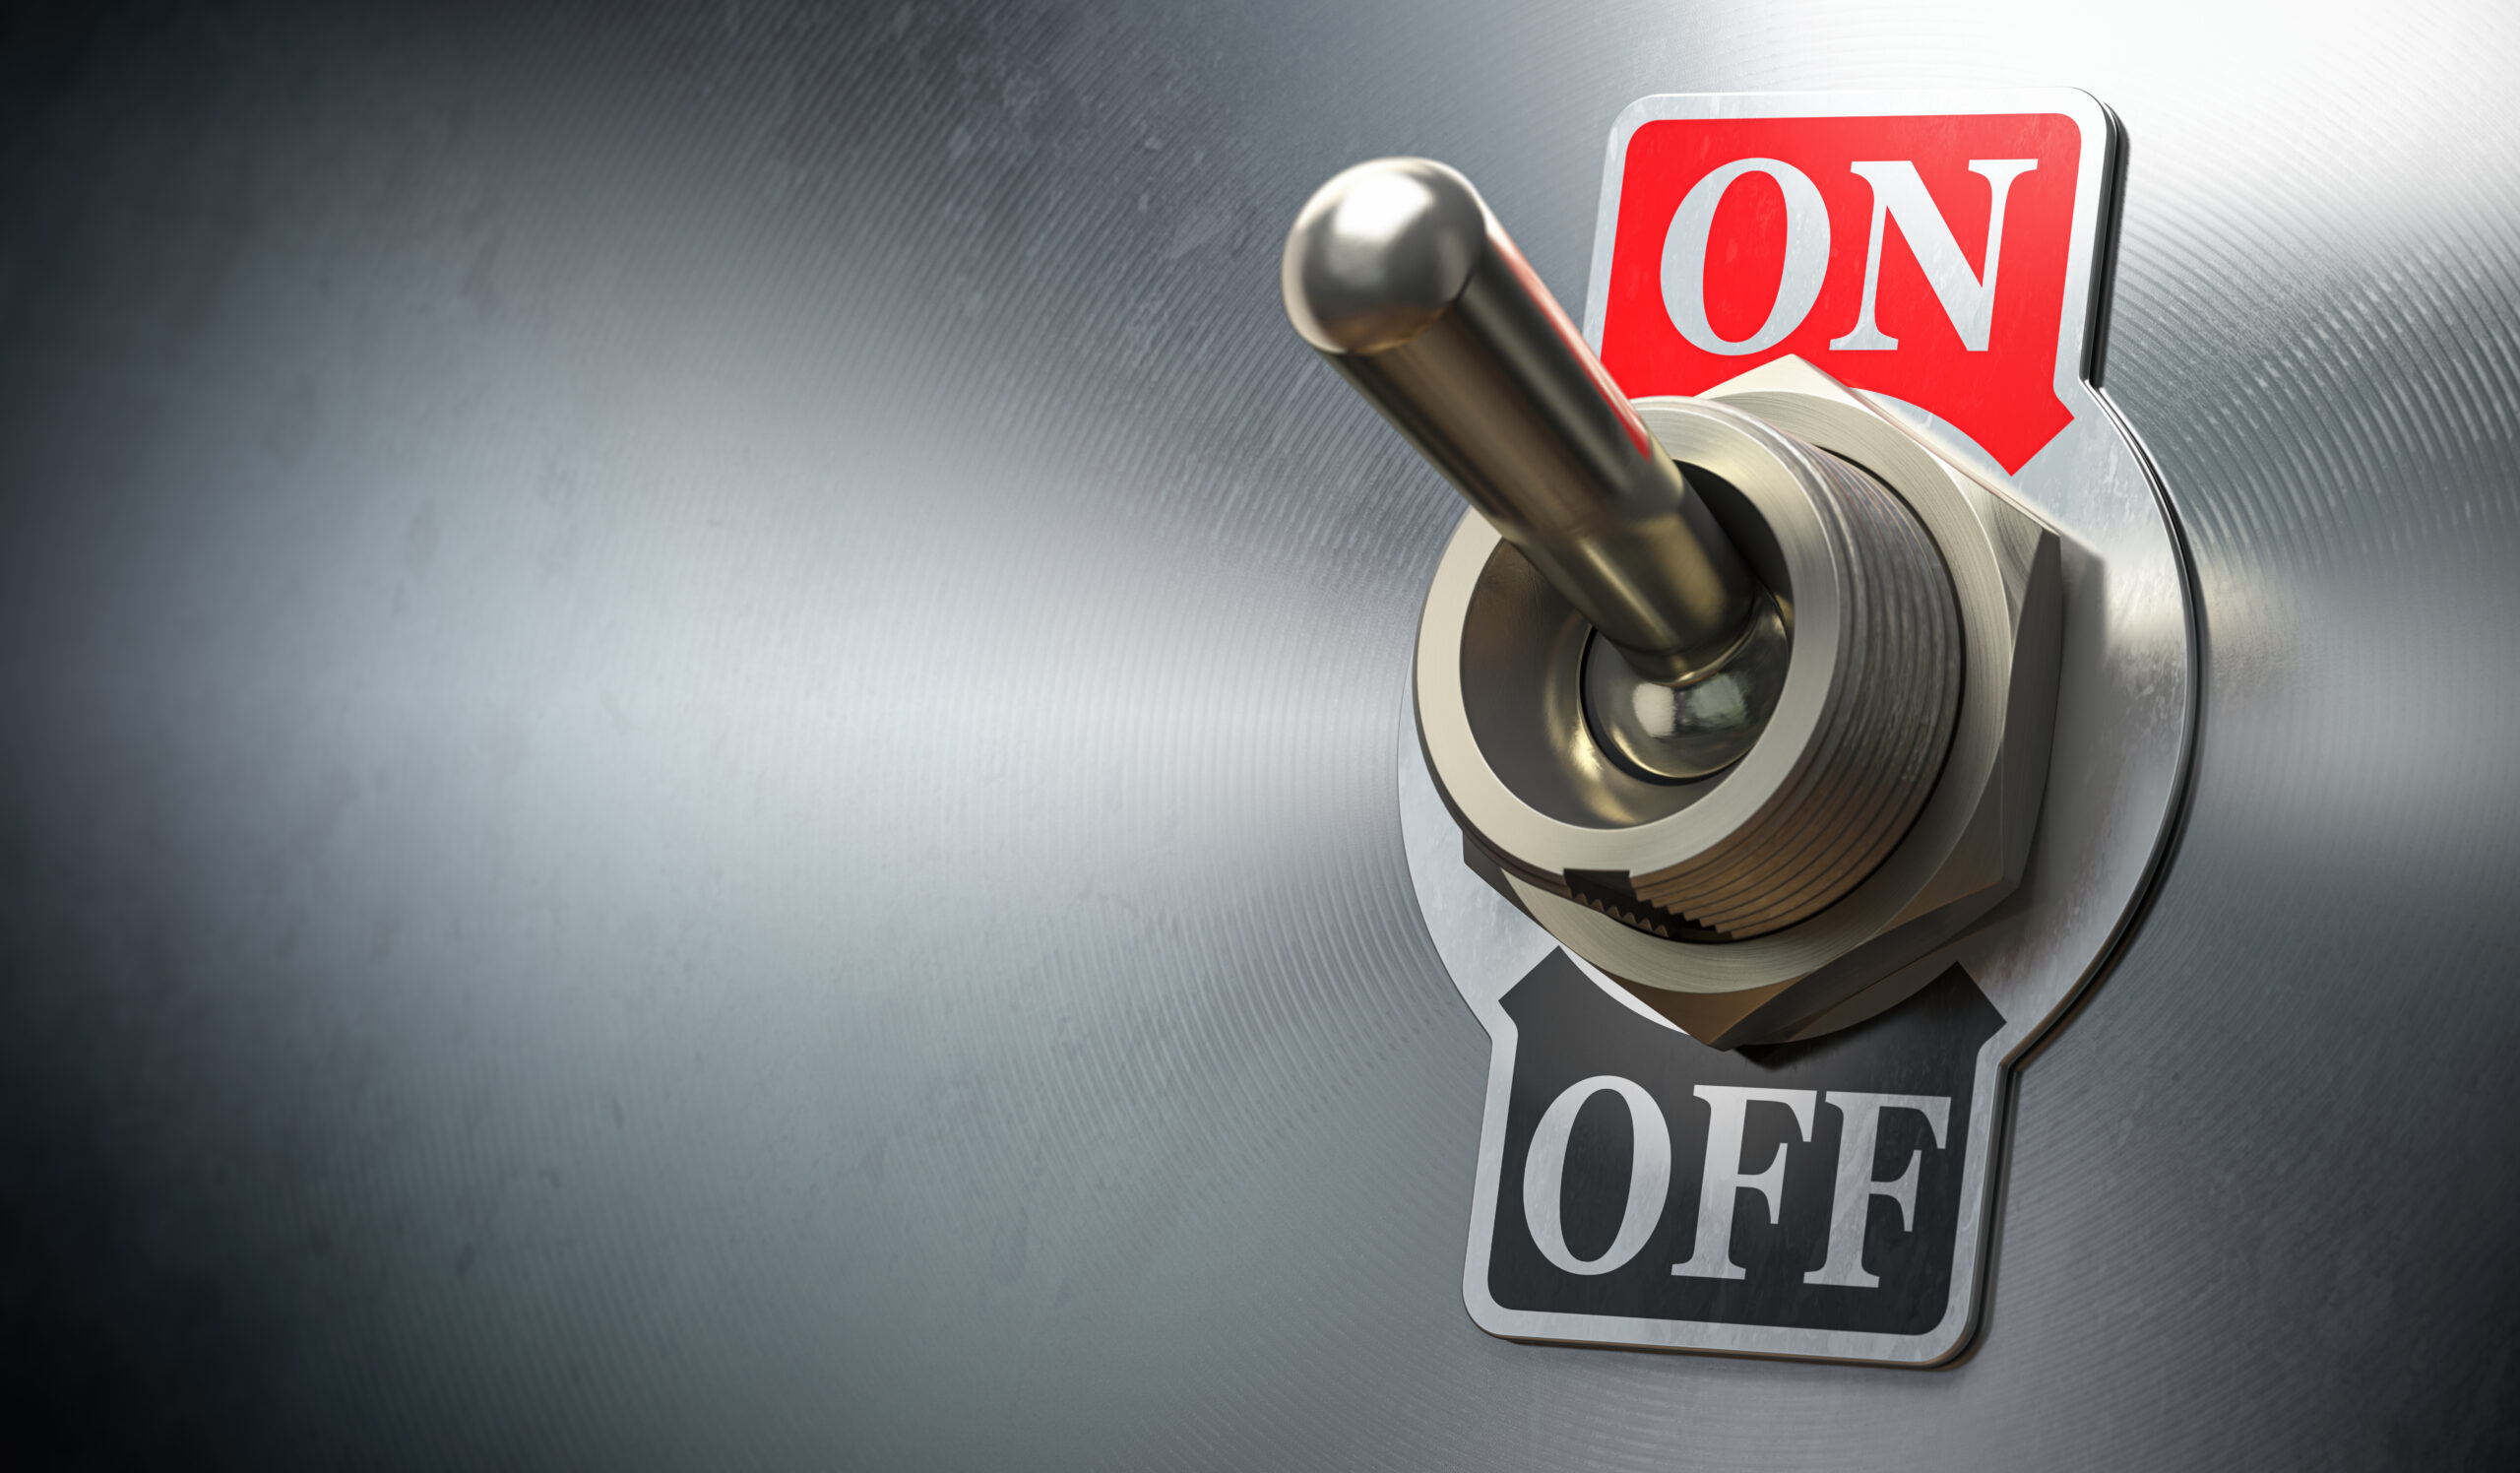 Retro toggle switch ON OFF on metal background.